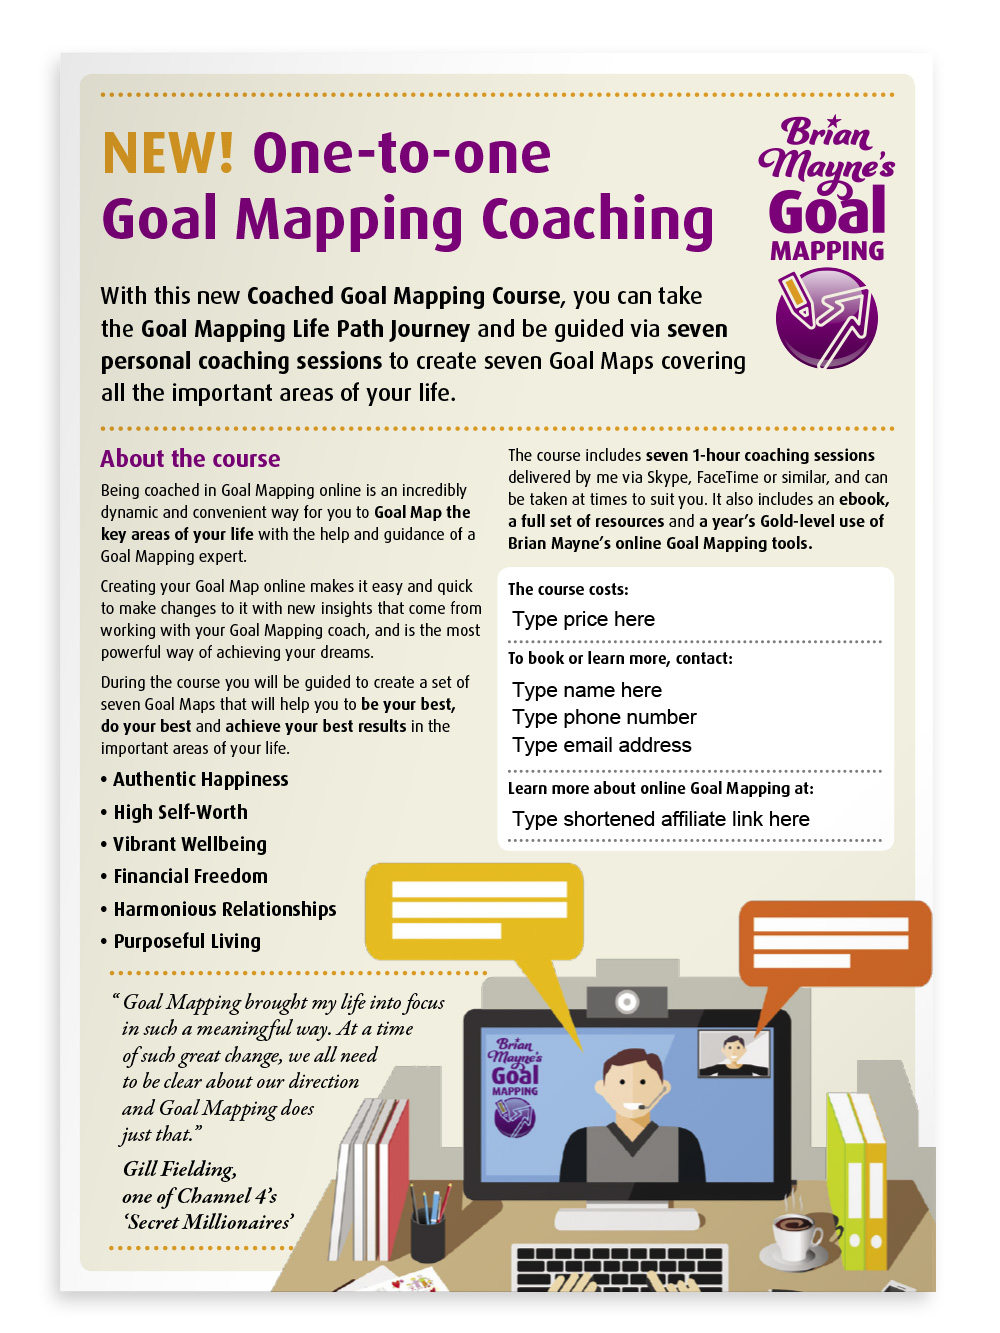 Editable single-page flyer promoting Goal Mapping coaching